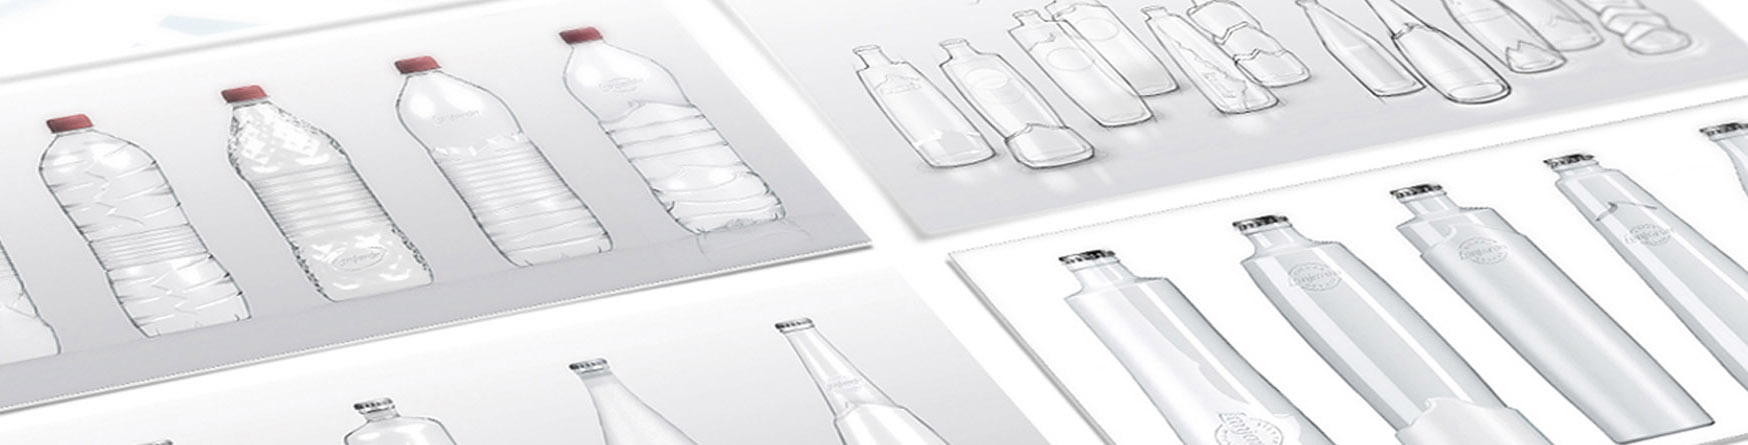 Product design sketches for a water bottle.